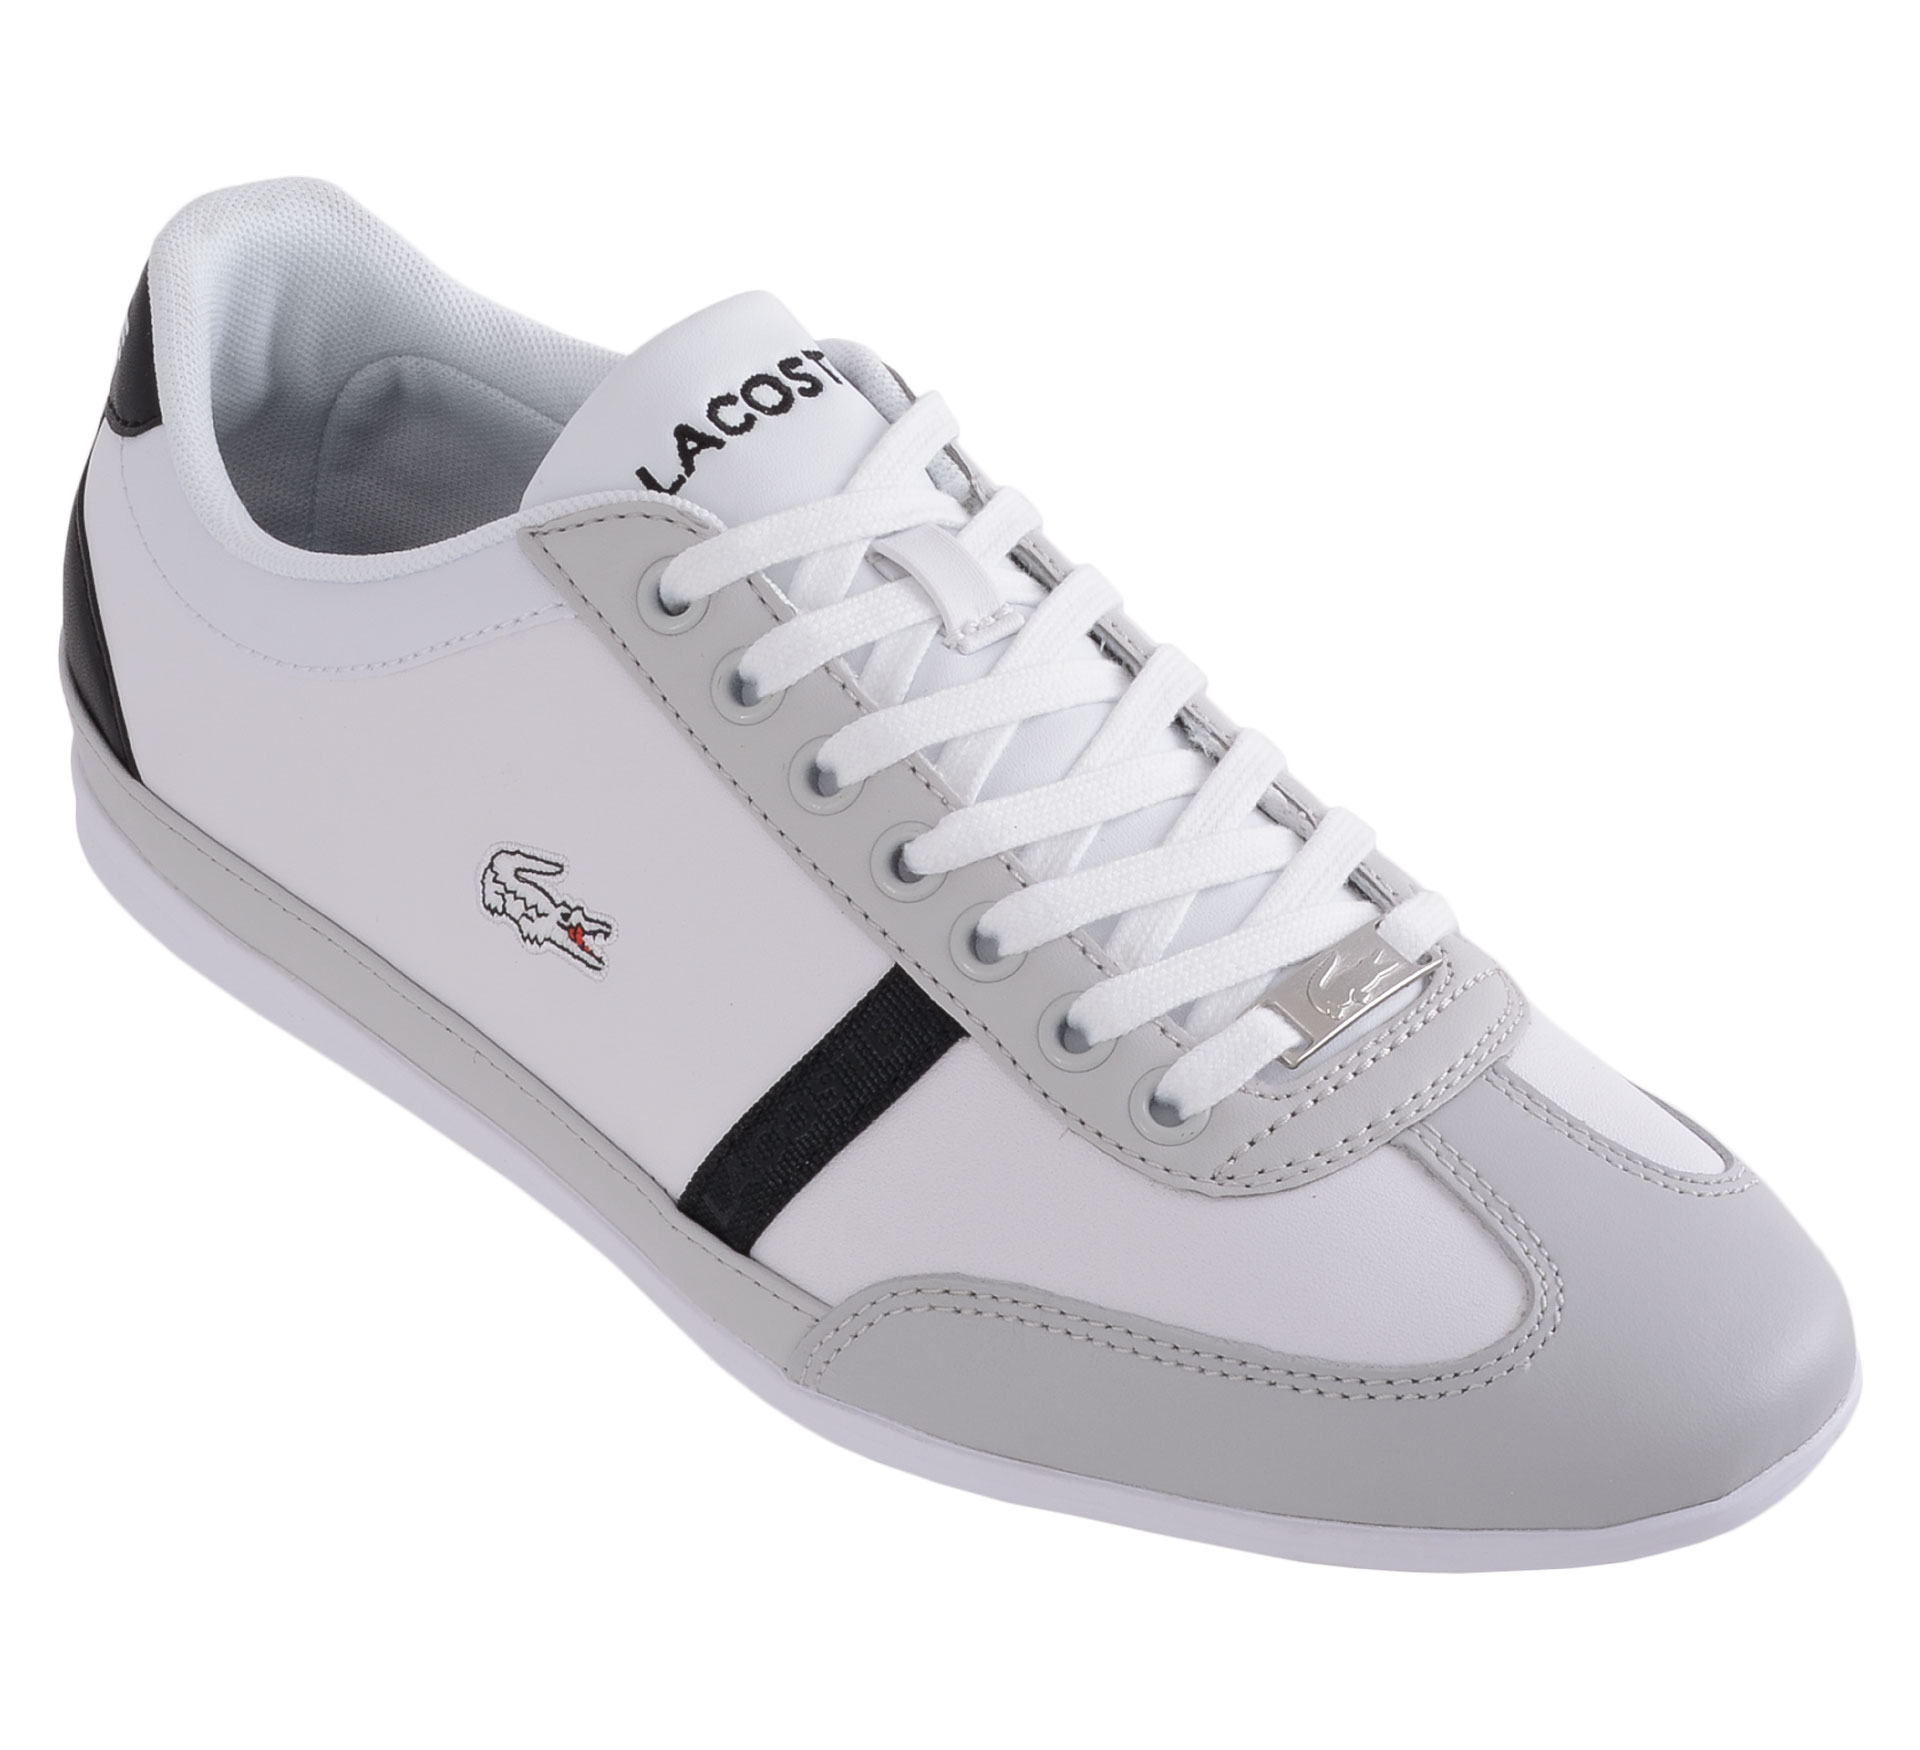 New Mens Lacoste Misano Sport SCY White Grey Leather Fashion Trainers Flat Shoes | EBay